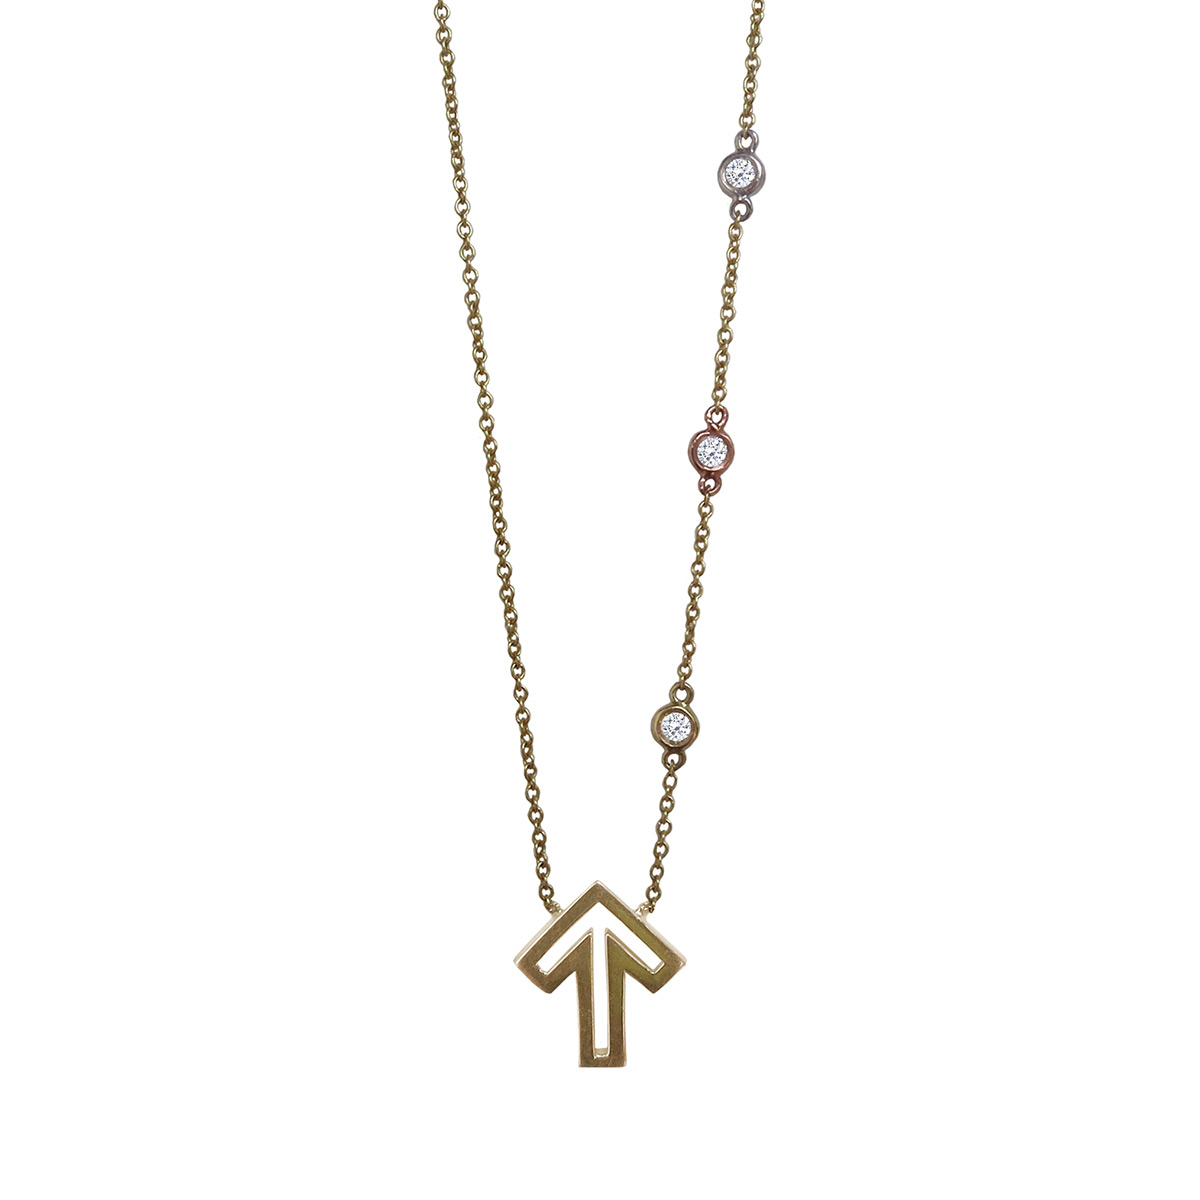 Golden Thread Journey 2 A Cure Open Arrow Necklace - 14k Gold